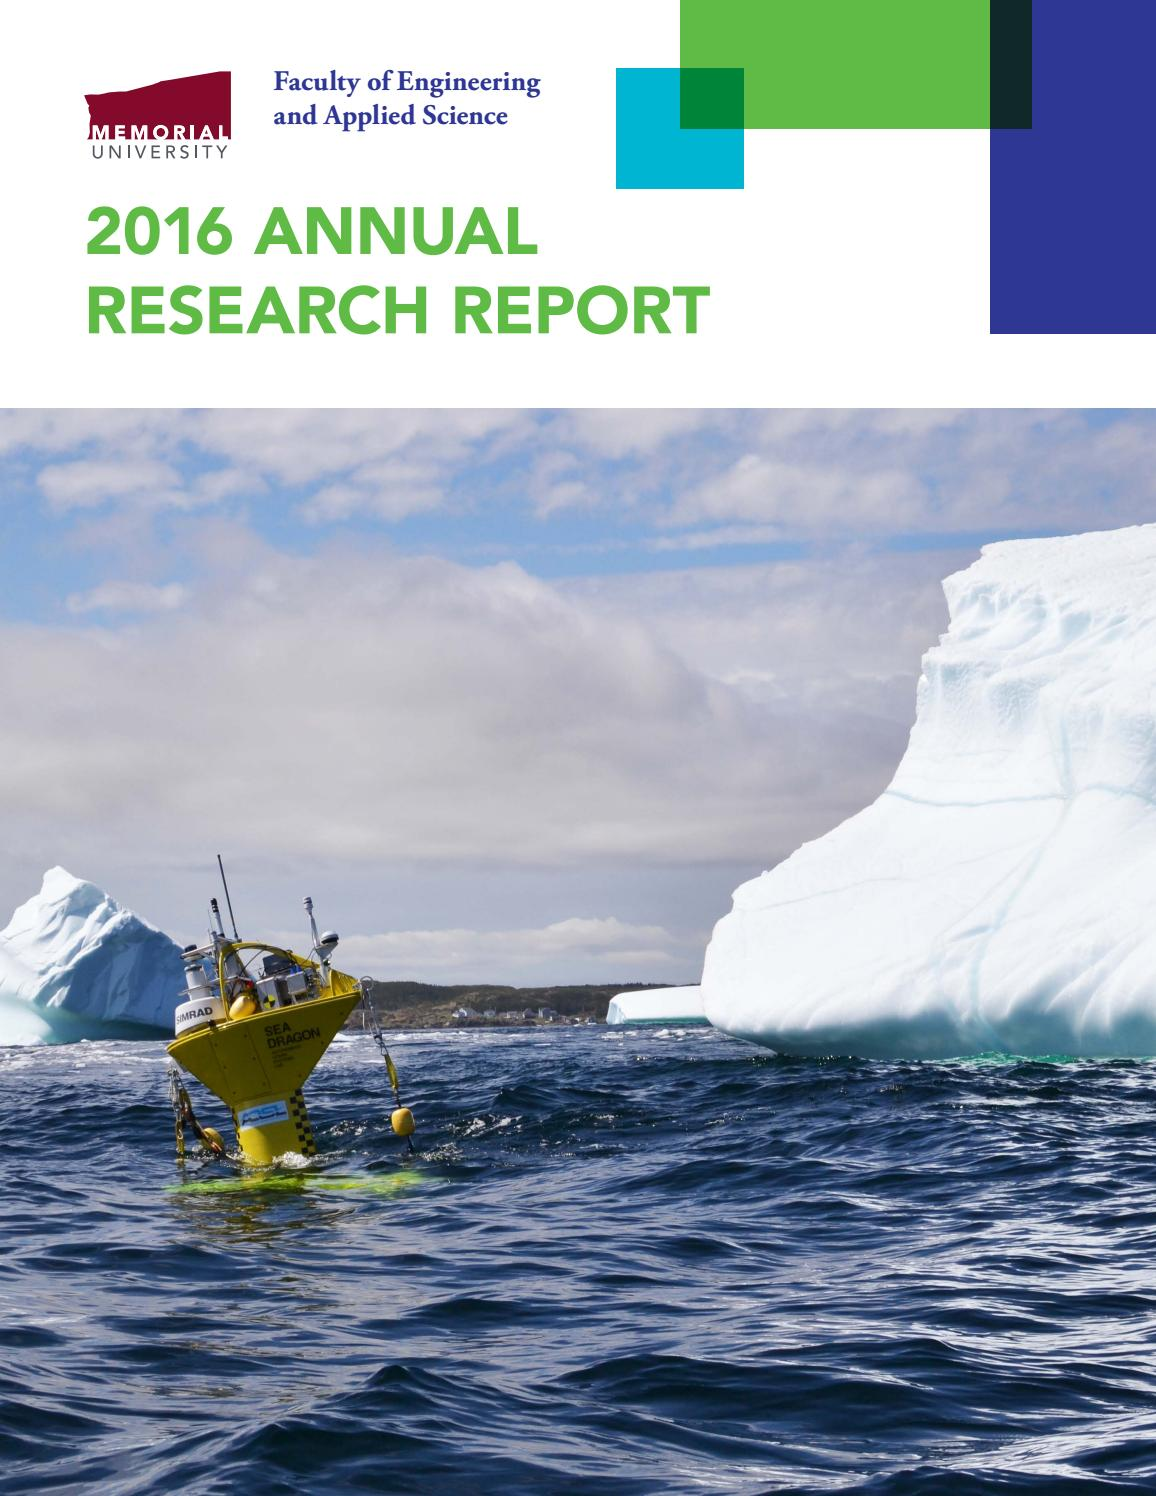 nserc chair design engineering covers ideas 2016 research report faculty of and applied